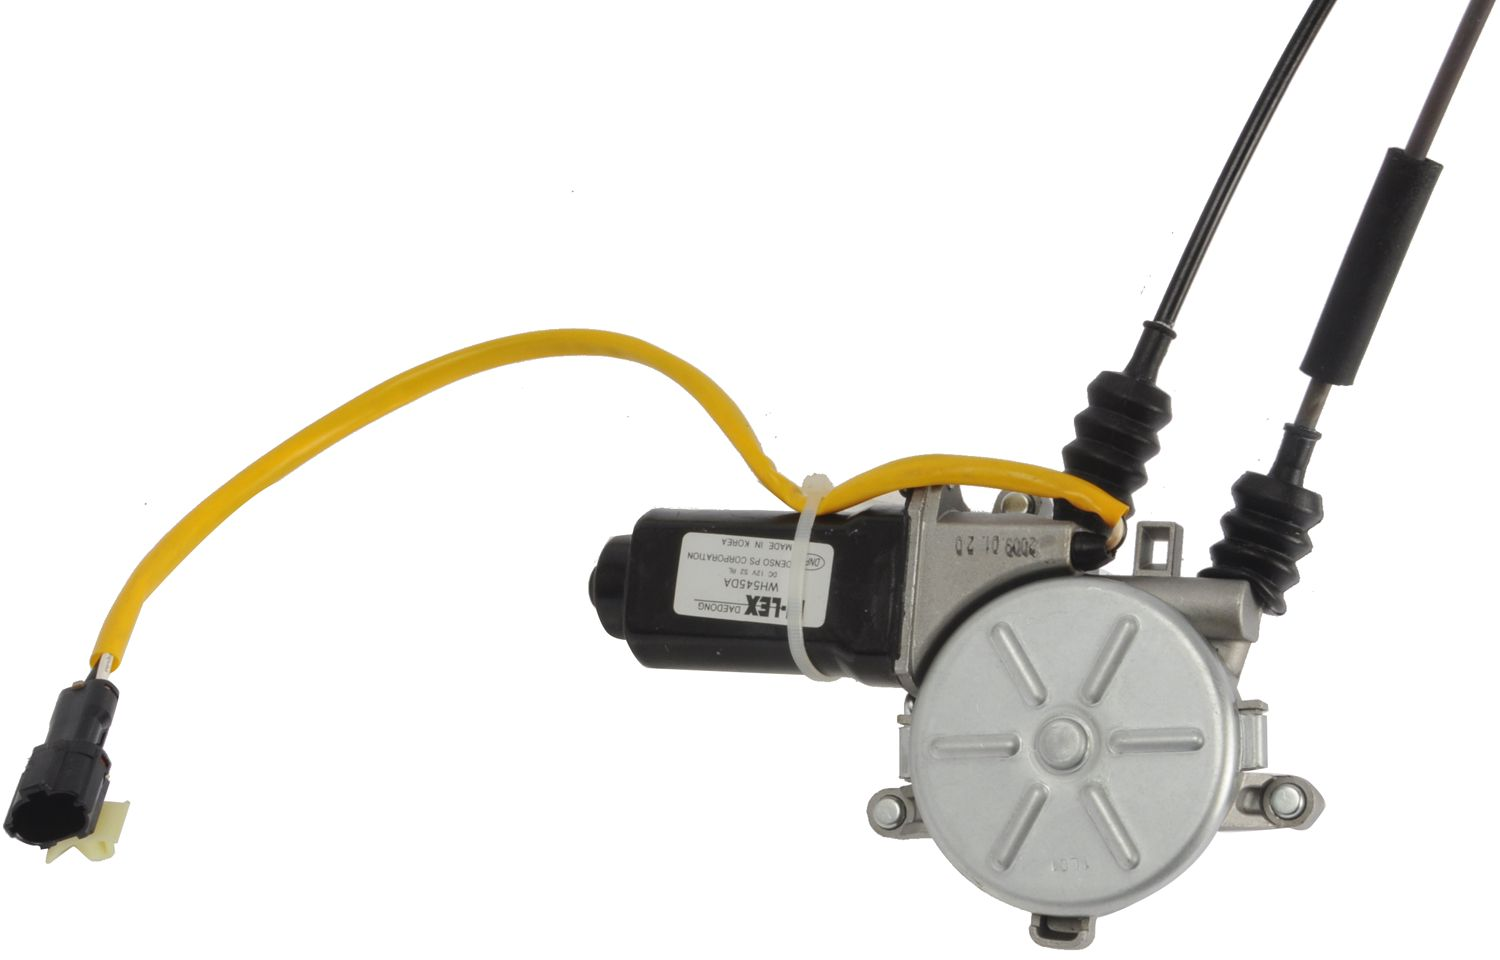 hight resolution of  2000 kia spectra power window motor and regulator assembly a1 82 4522ar